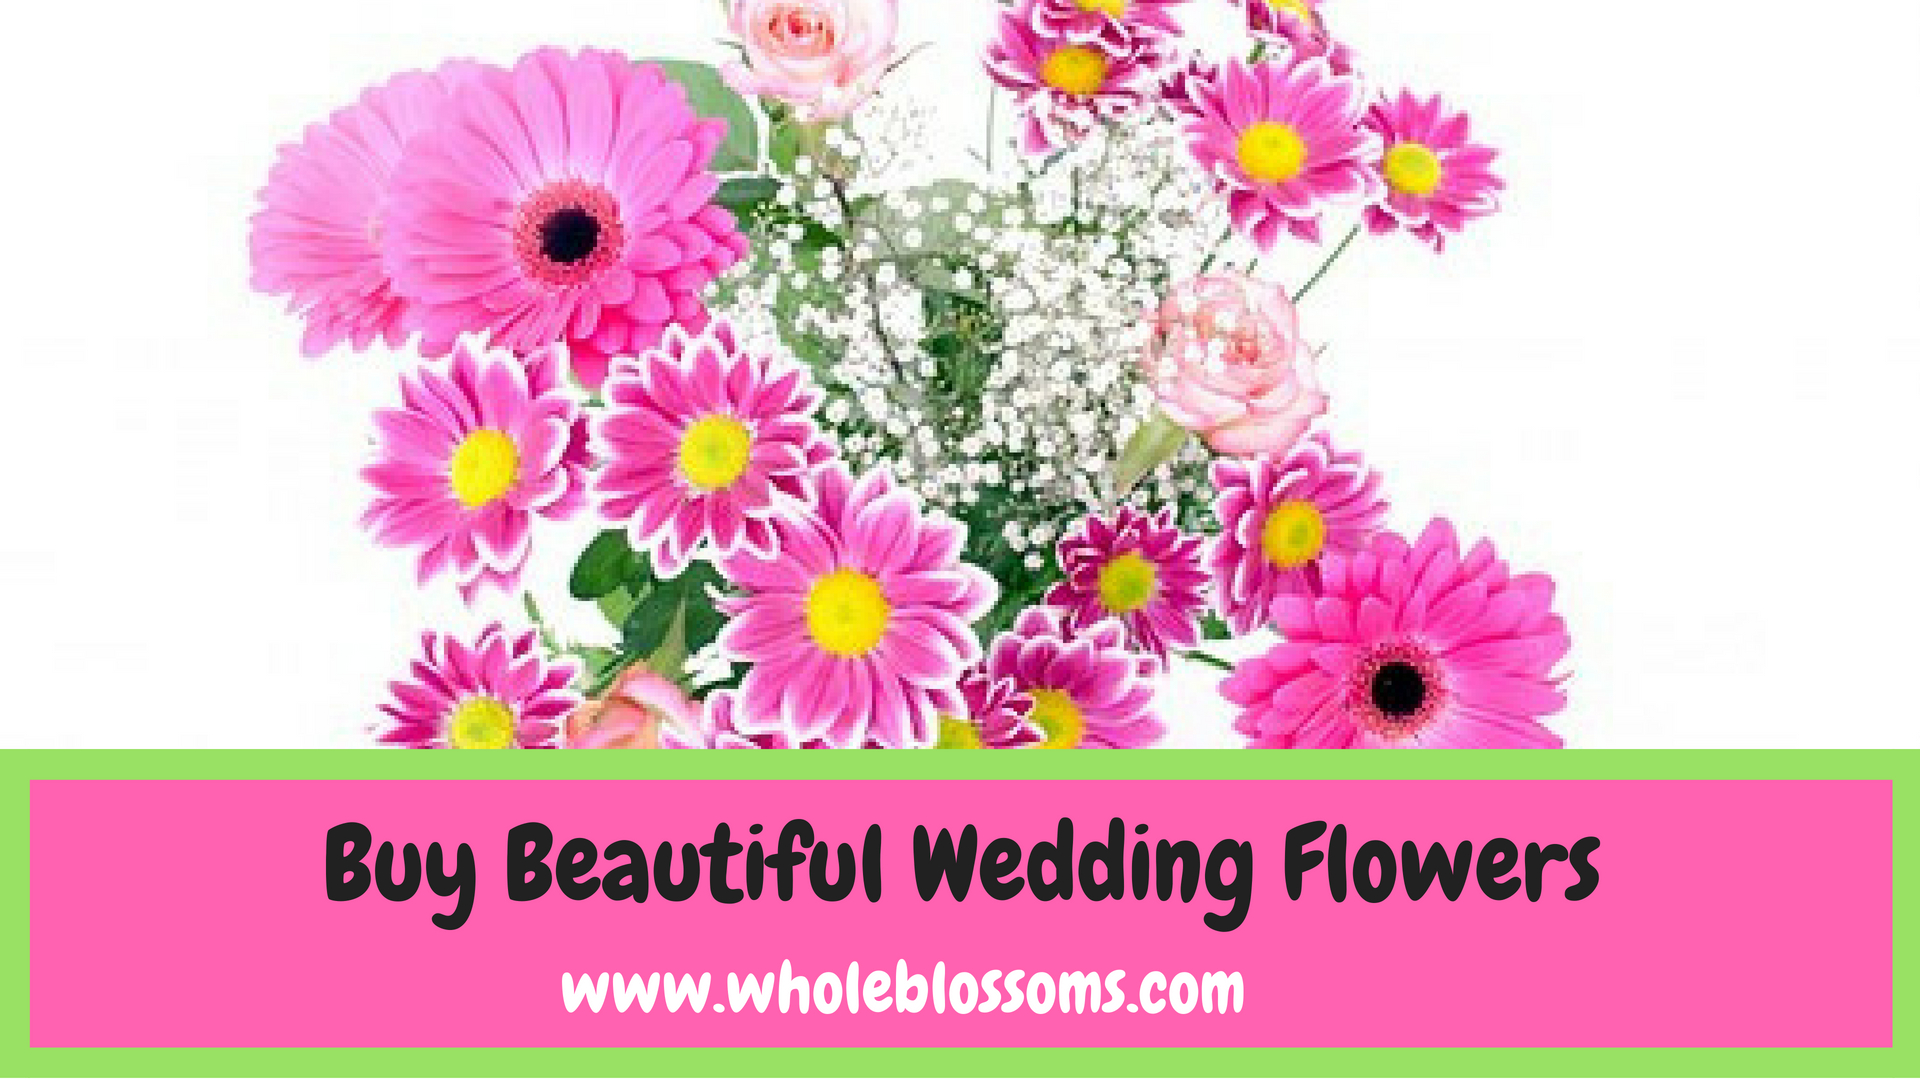 Whole Blossoms Provides Luxury Wedding Flowers Online